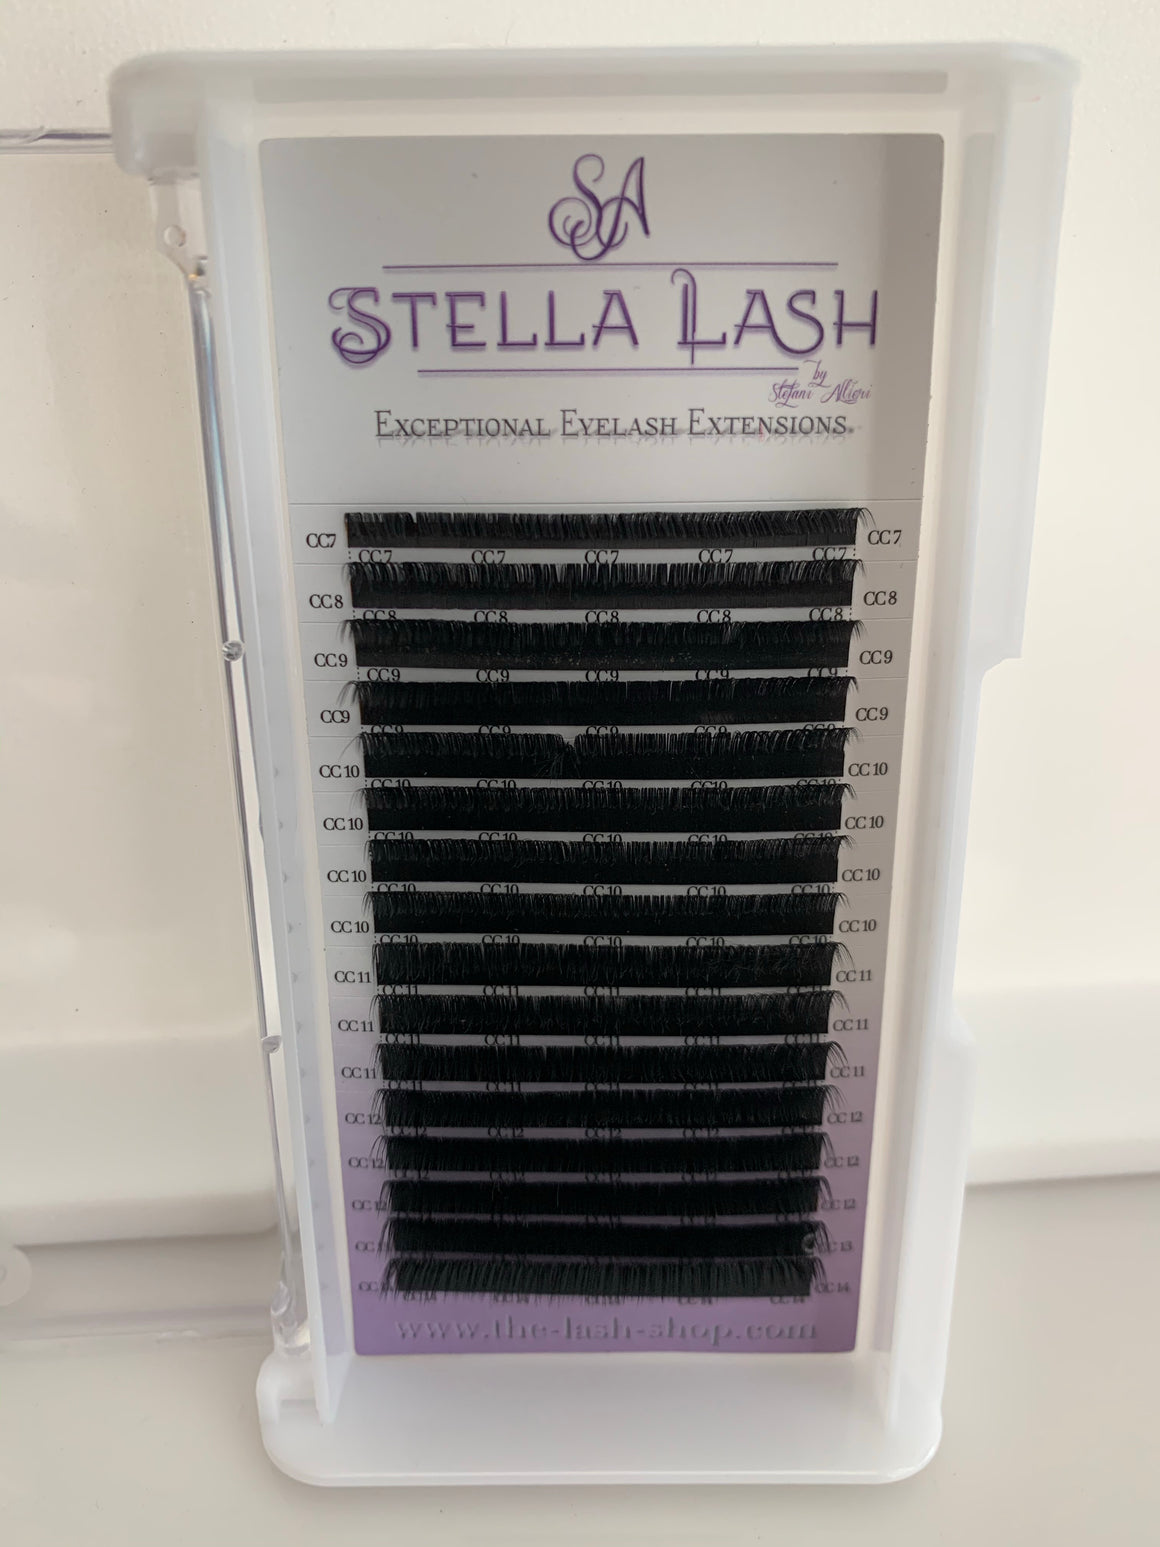 Stella CC Curl Single Length Trays - The Lash Shop @ StellaLash